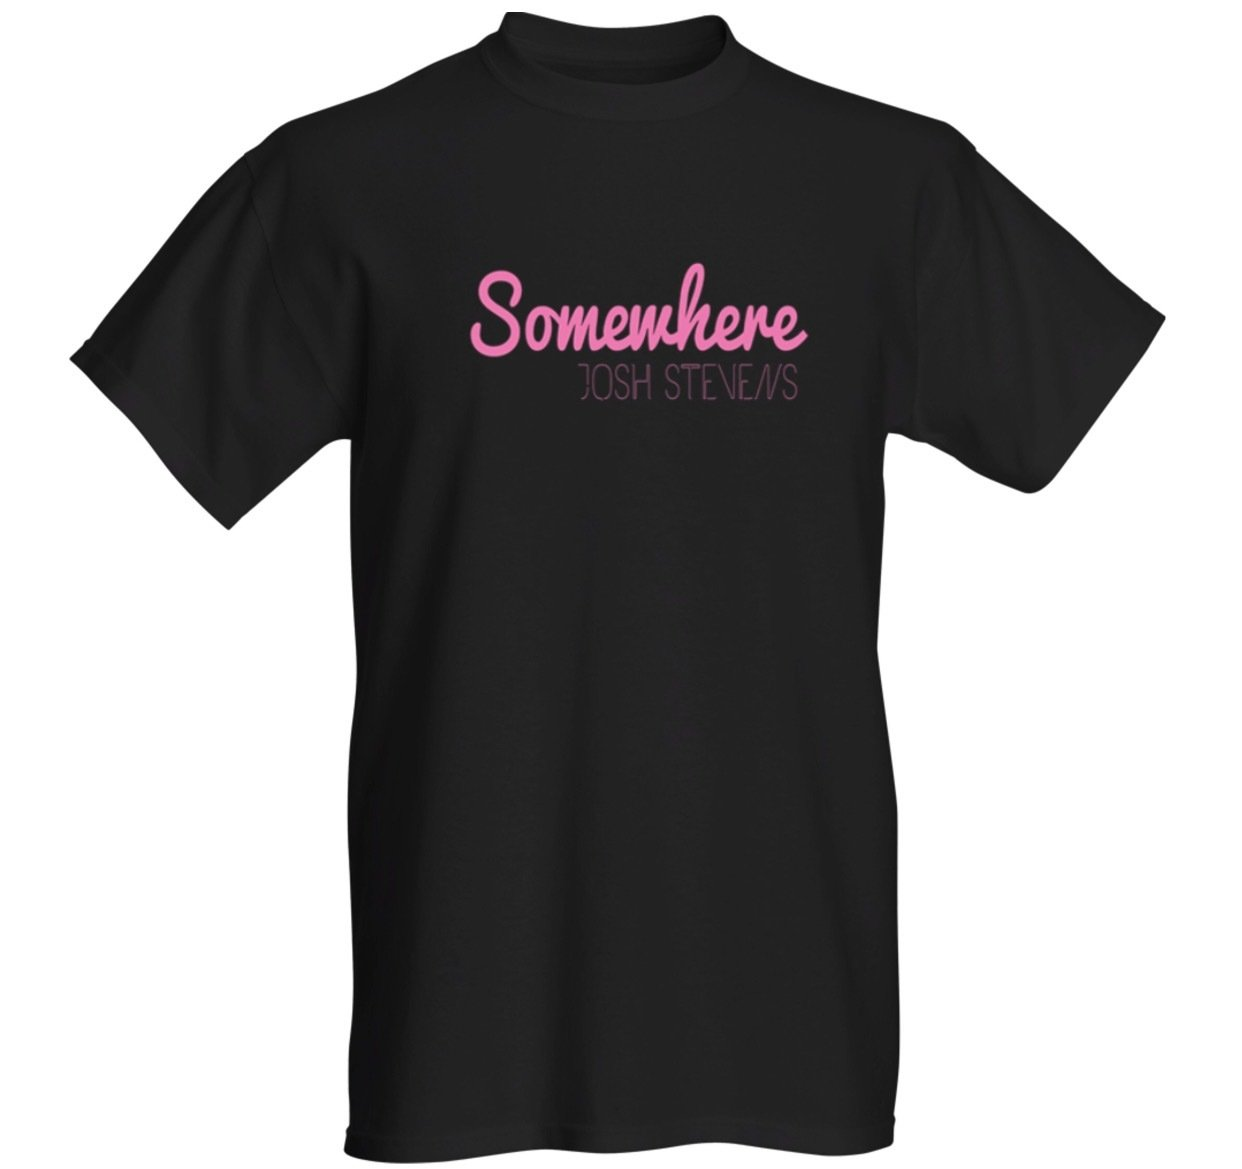 Somewhere - T-shirt - Black